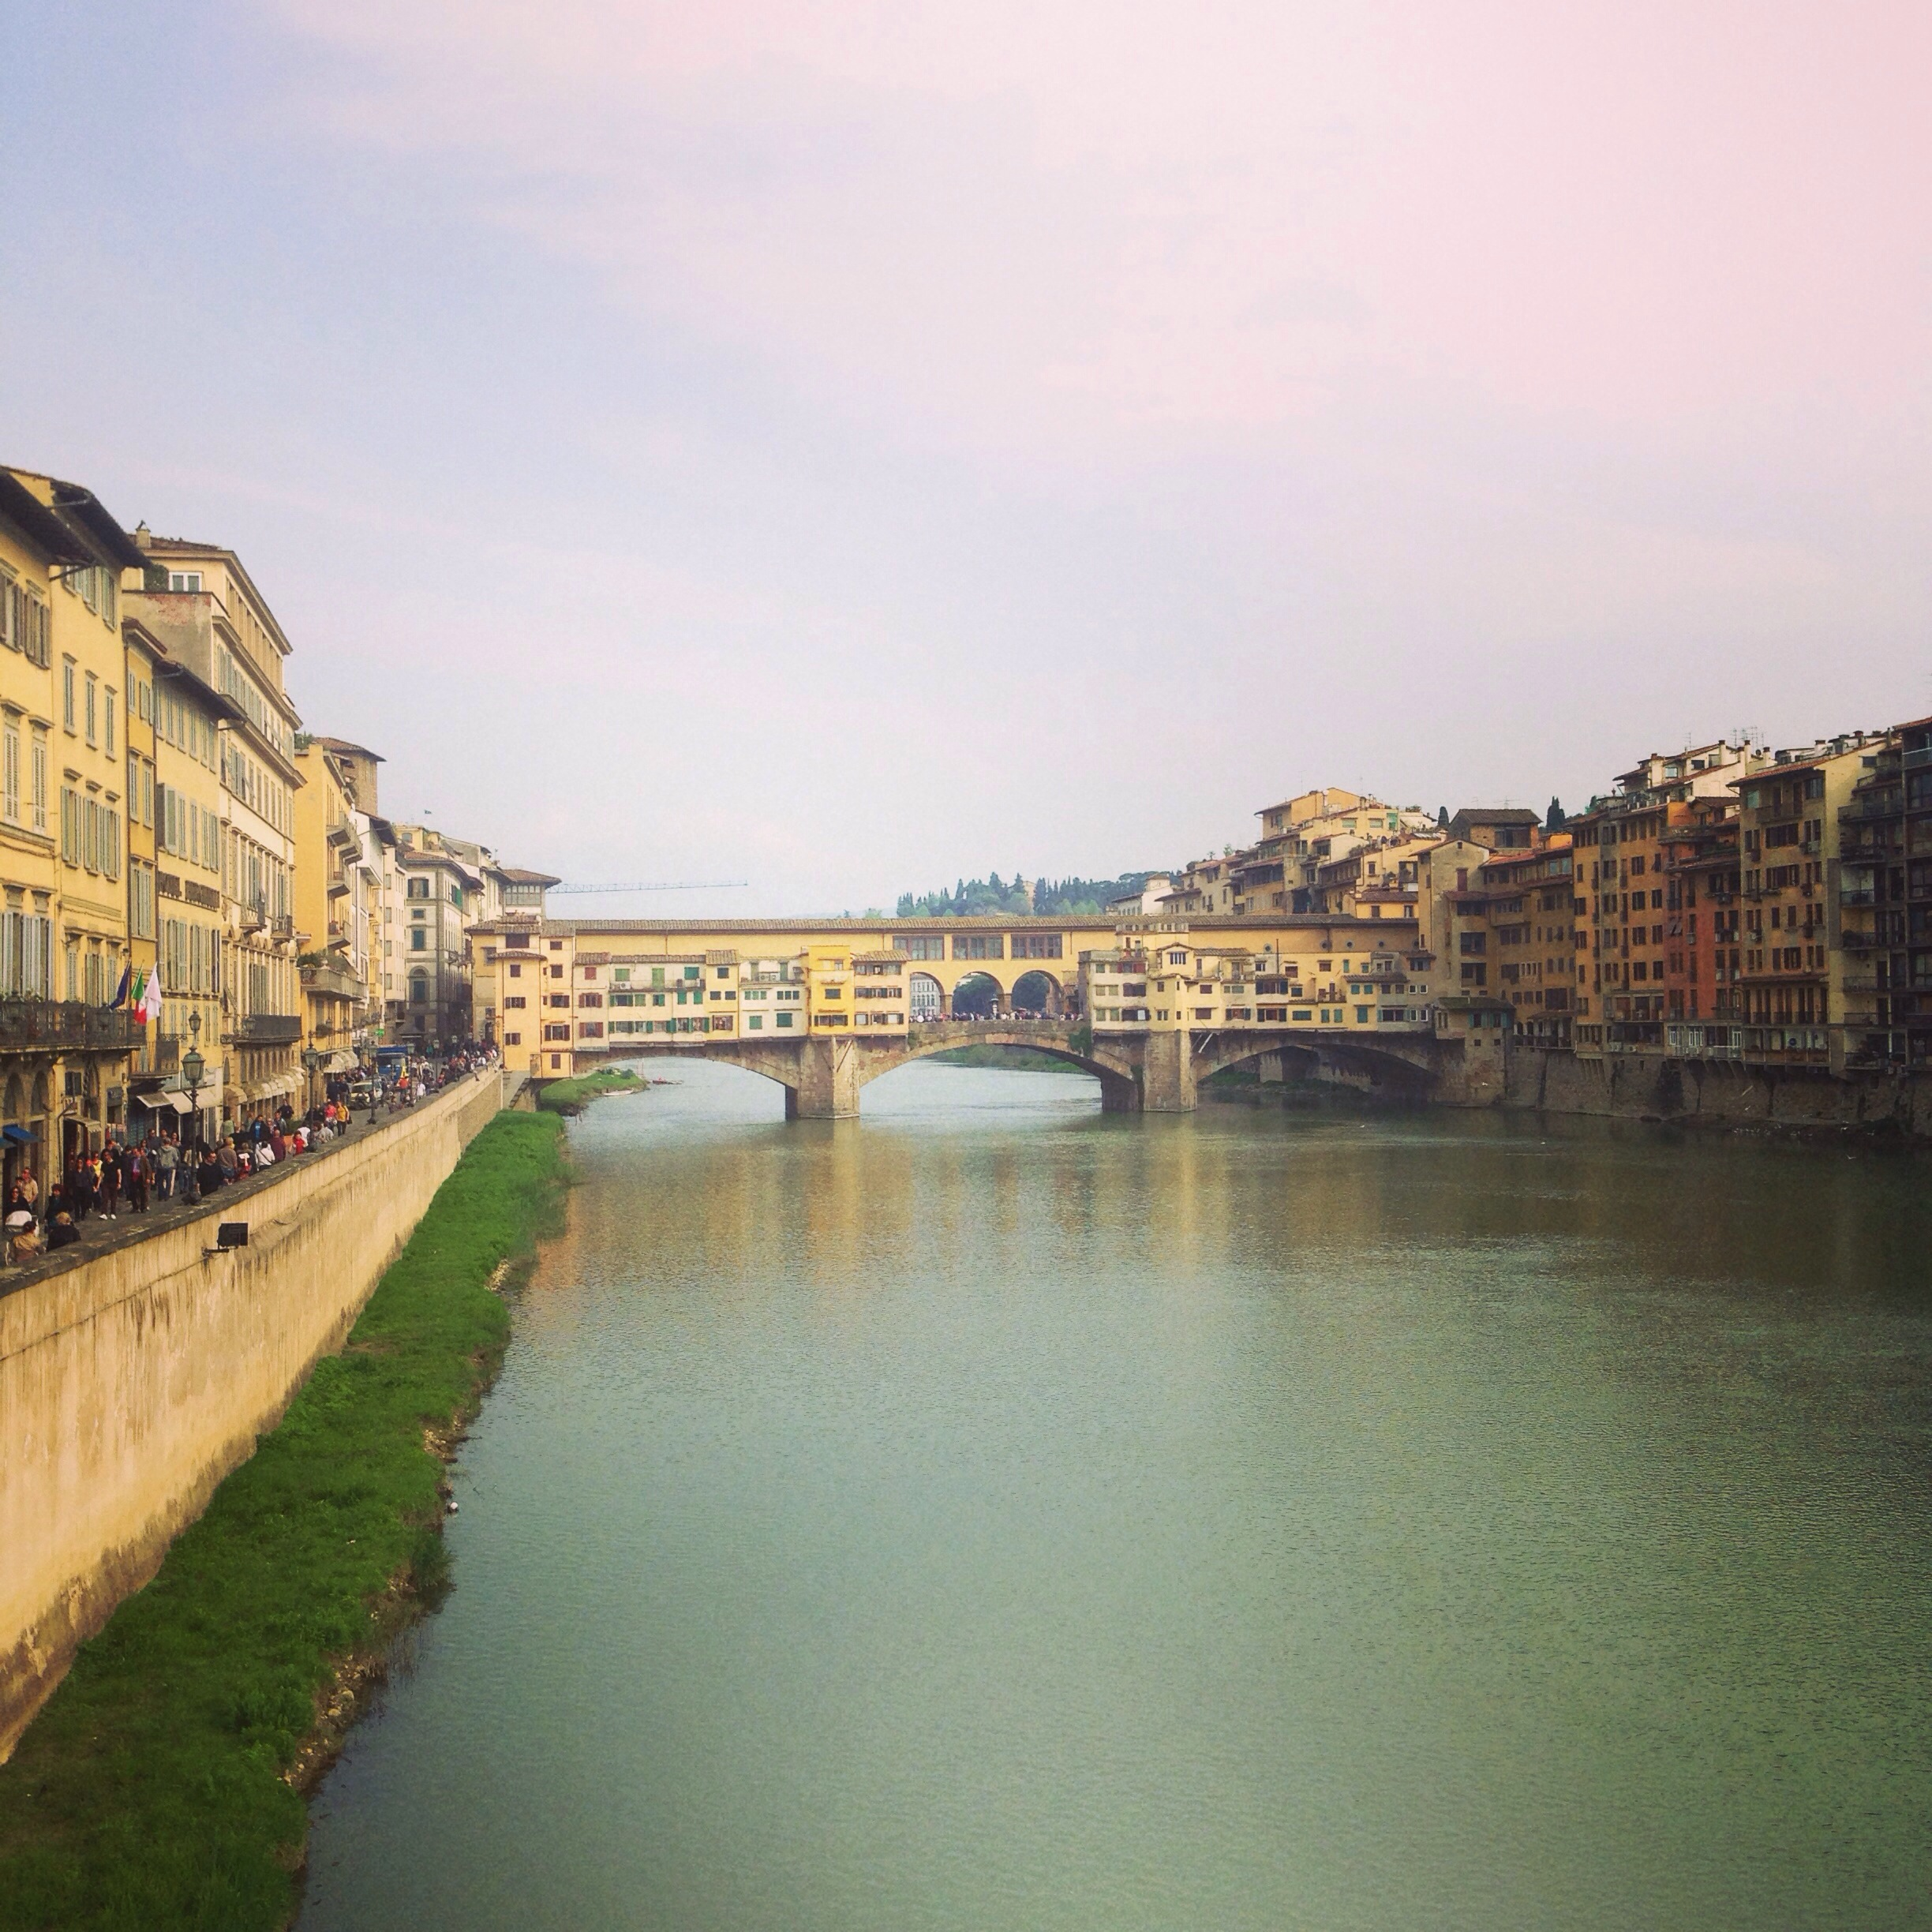 Staring down the Arno river to the famous Ponte Vecchio